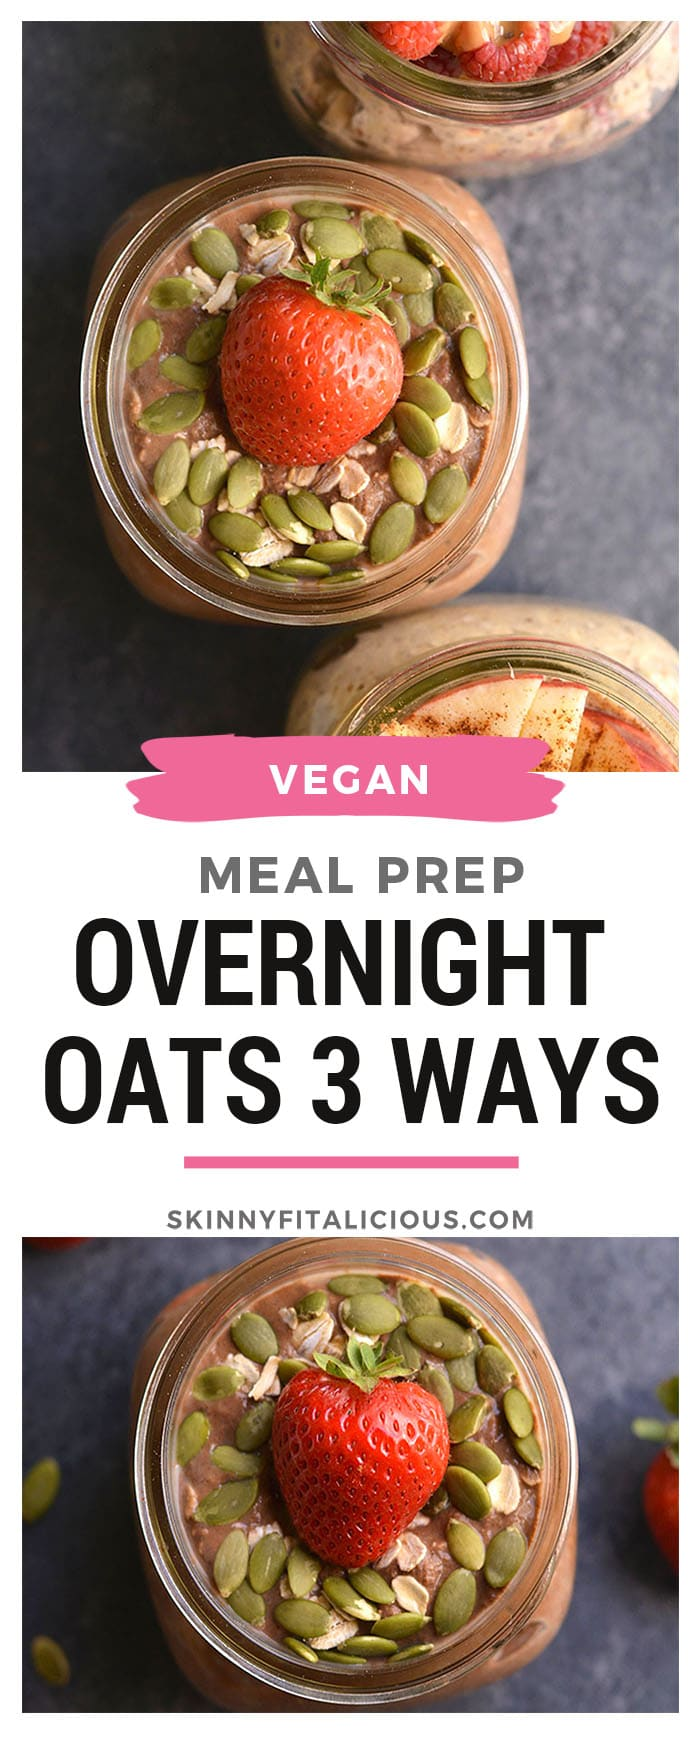 Meal Prep Overnight Oats 3 Ways! Homemade gluten free oats, made free of artificial ingredients, packed with protein, flavor, and EASY to make! Eat them as instant oatmeal or overnight oats. Gluten Free + Low Calorie + Vegan